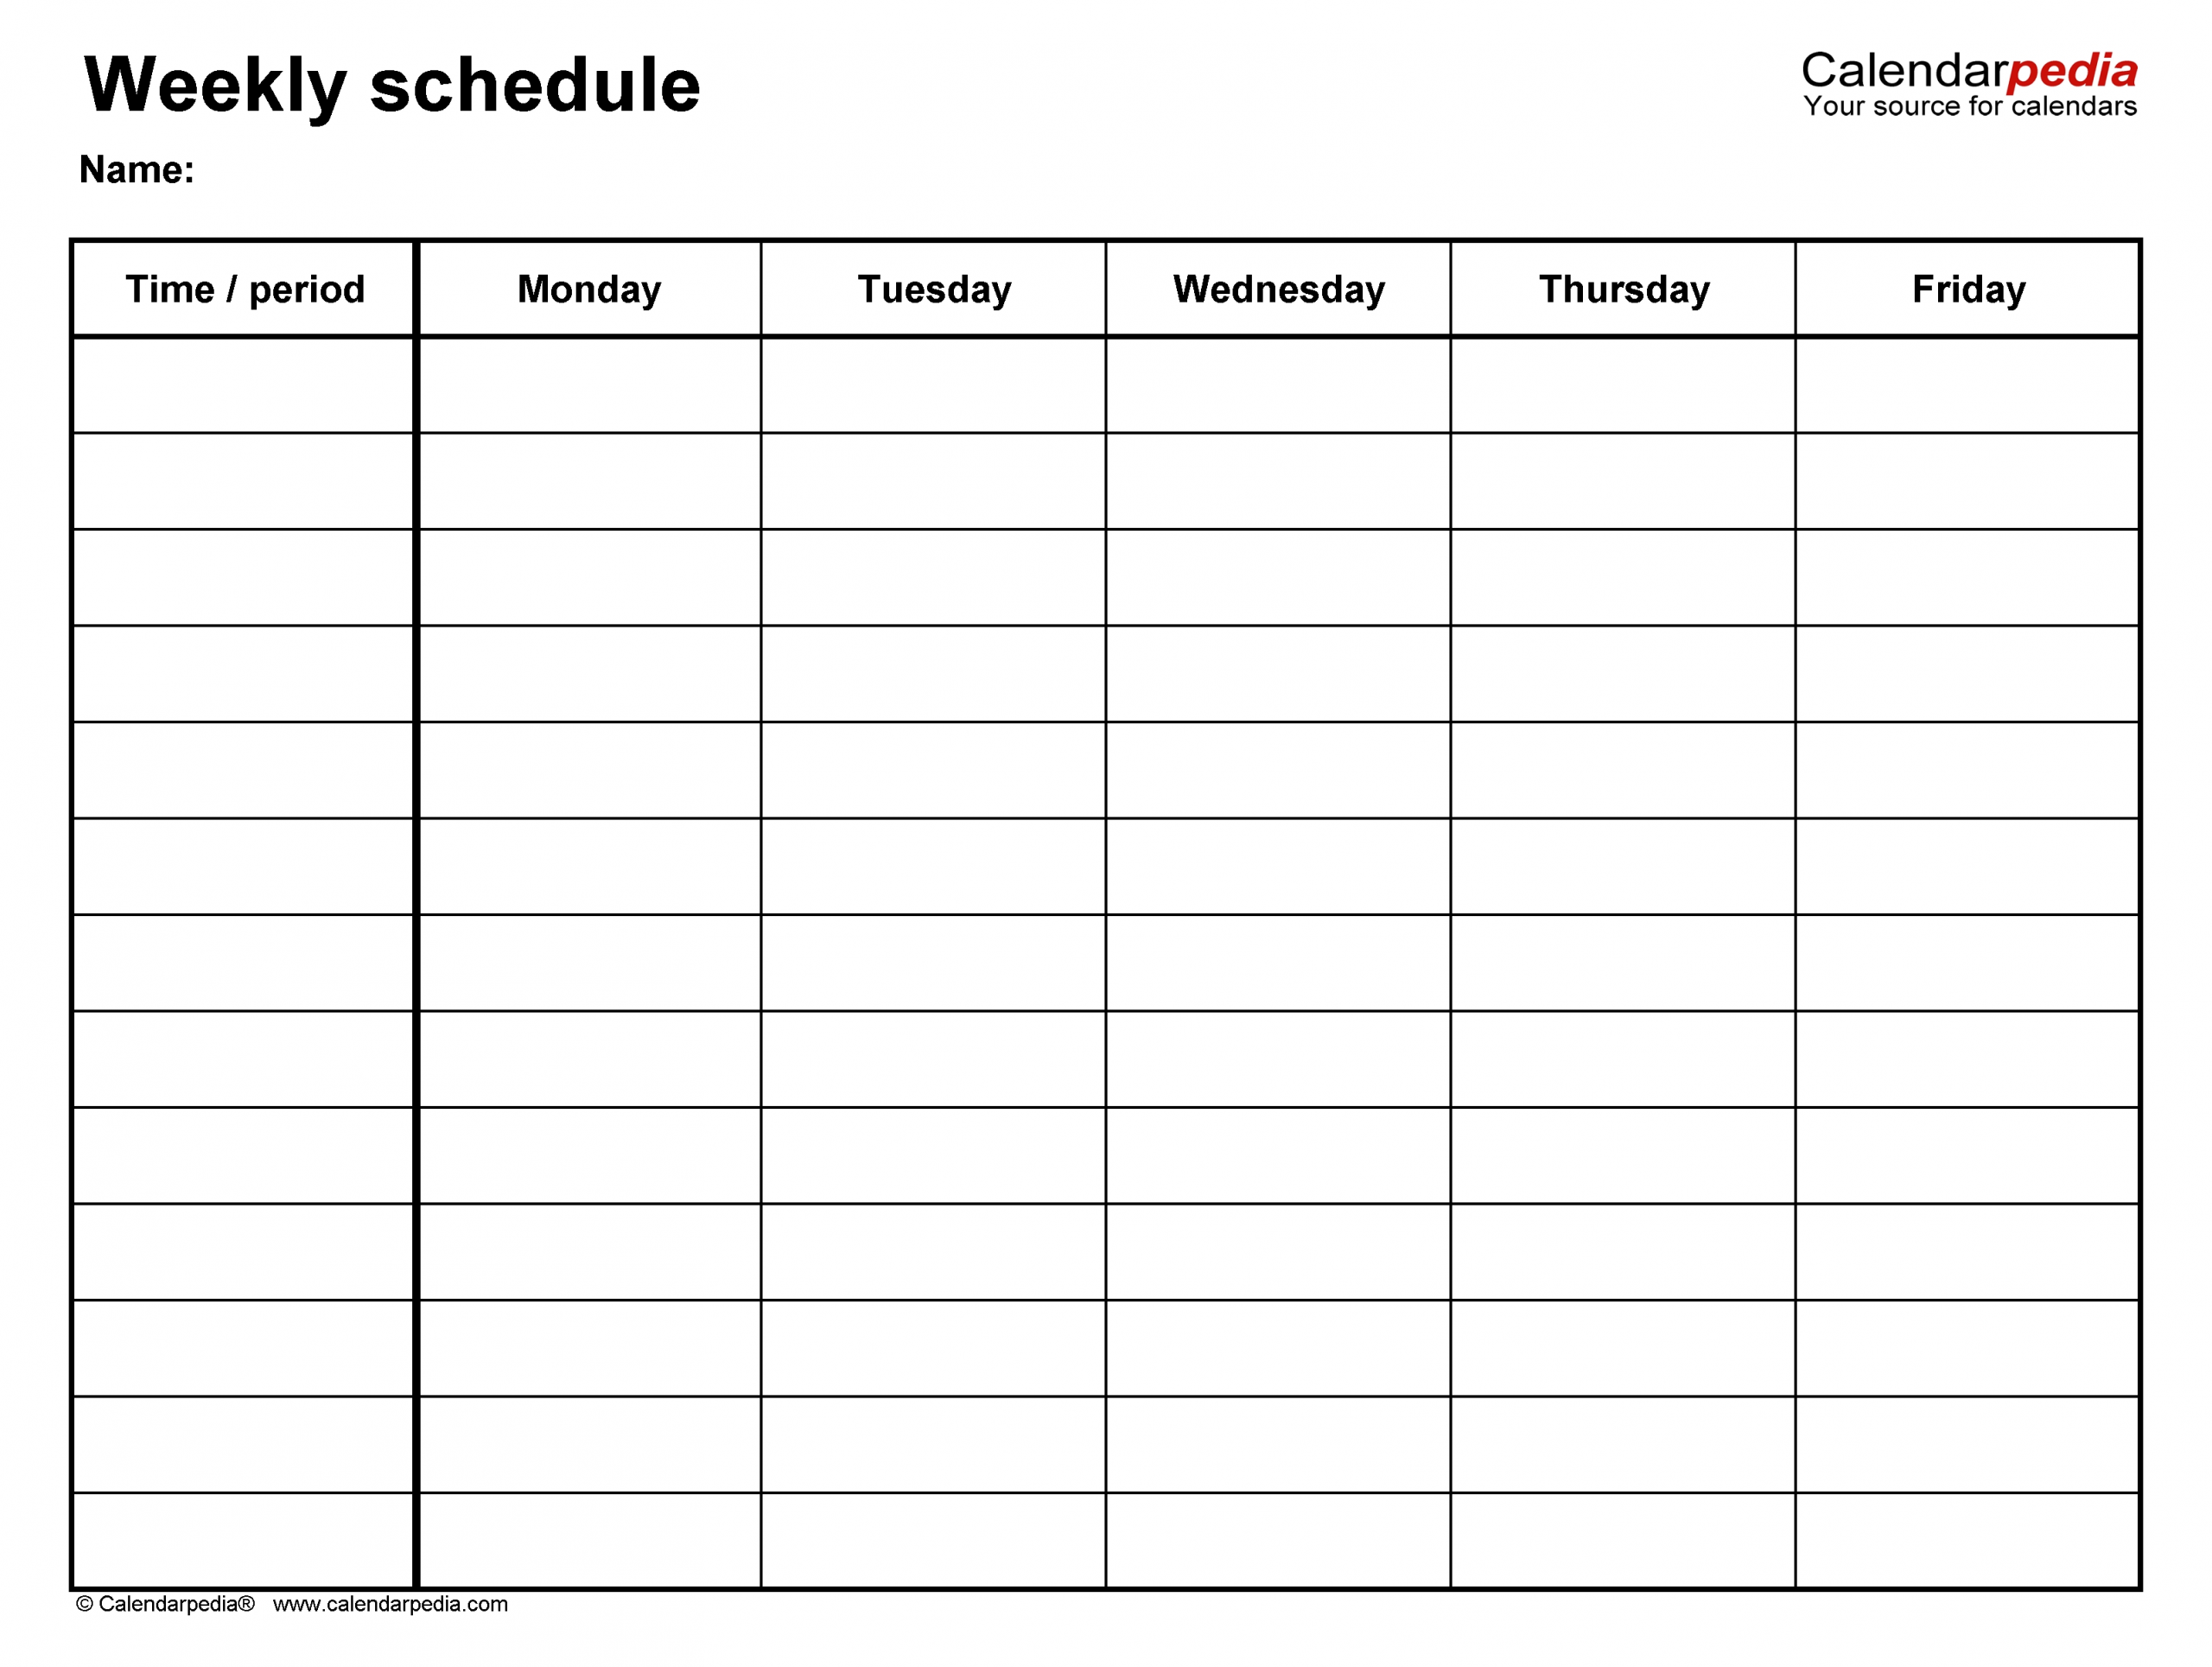 Free Weekly Schedule Templates For Word - 18 Templates with regard to Monsay Through Friday Calneder With Times